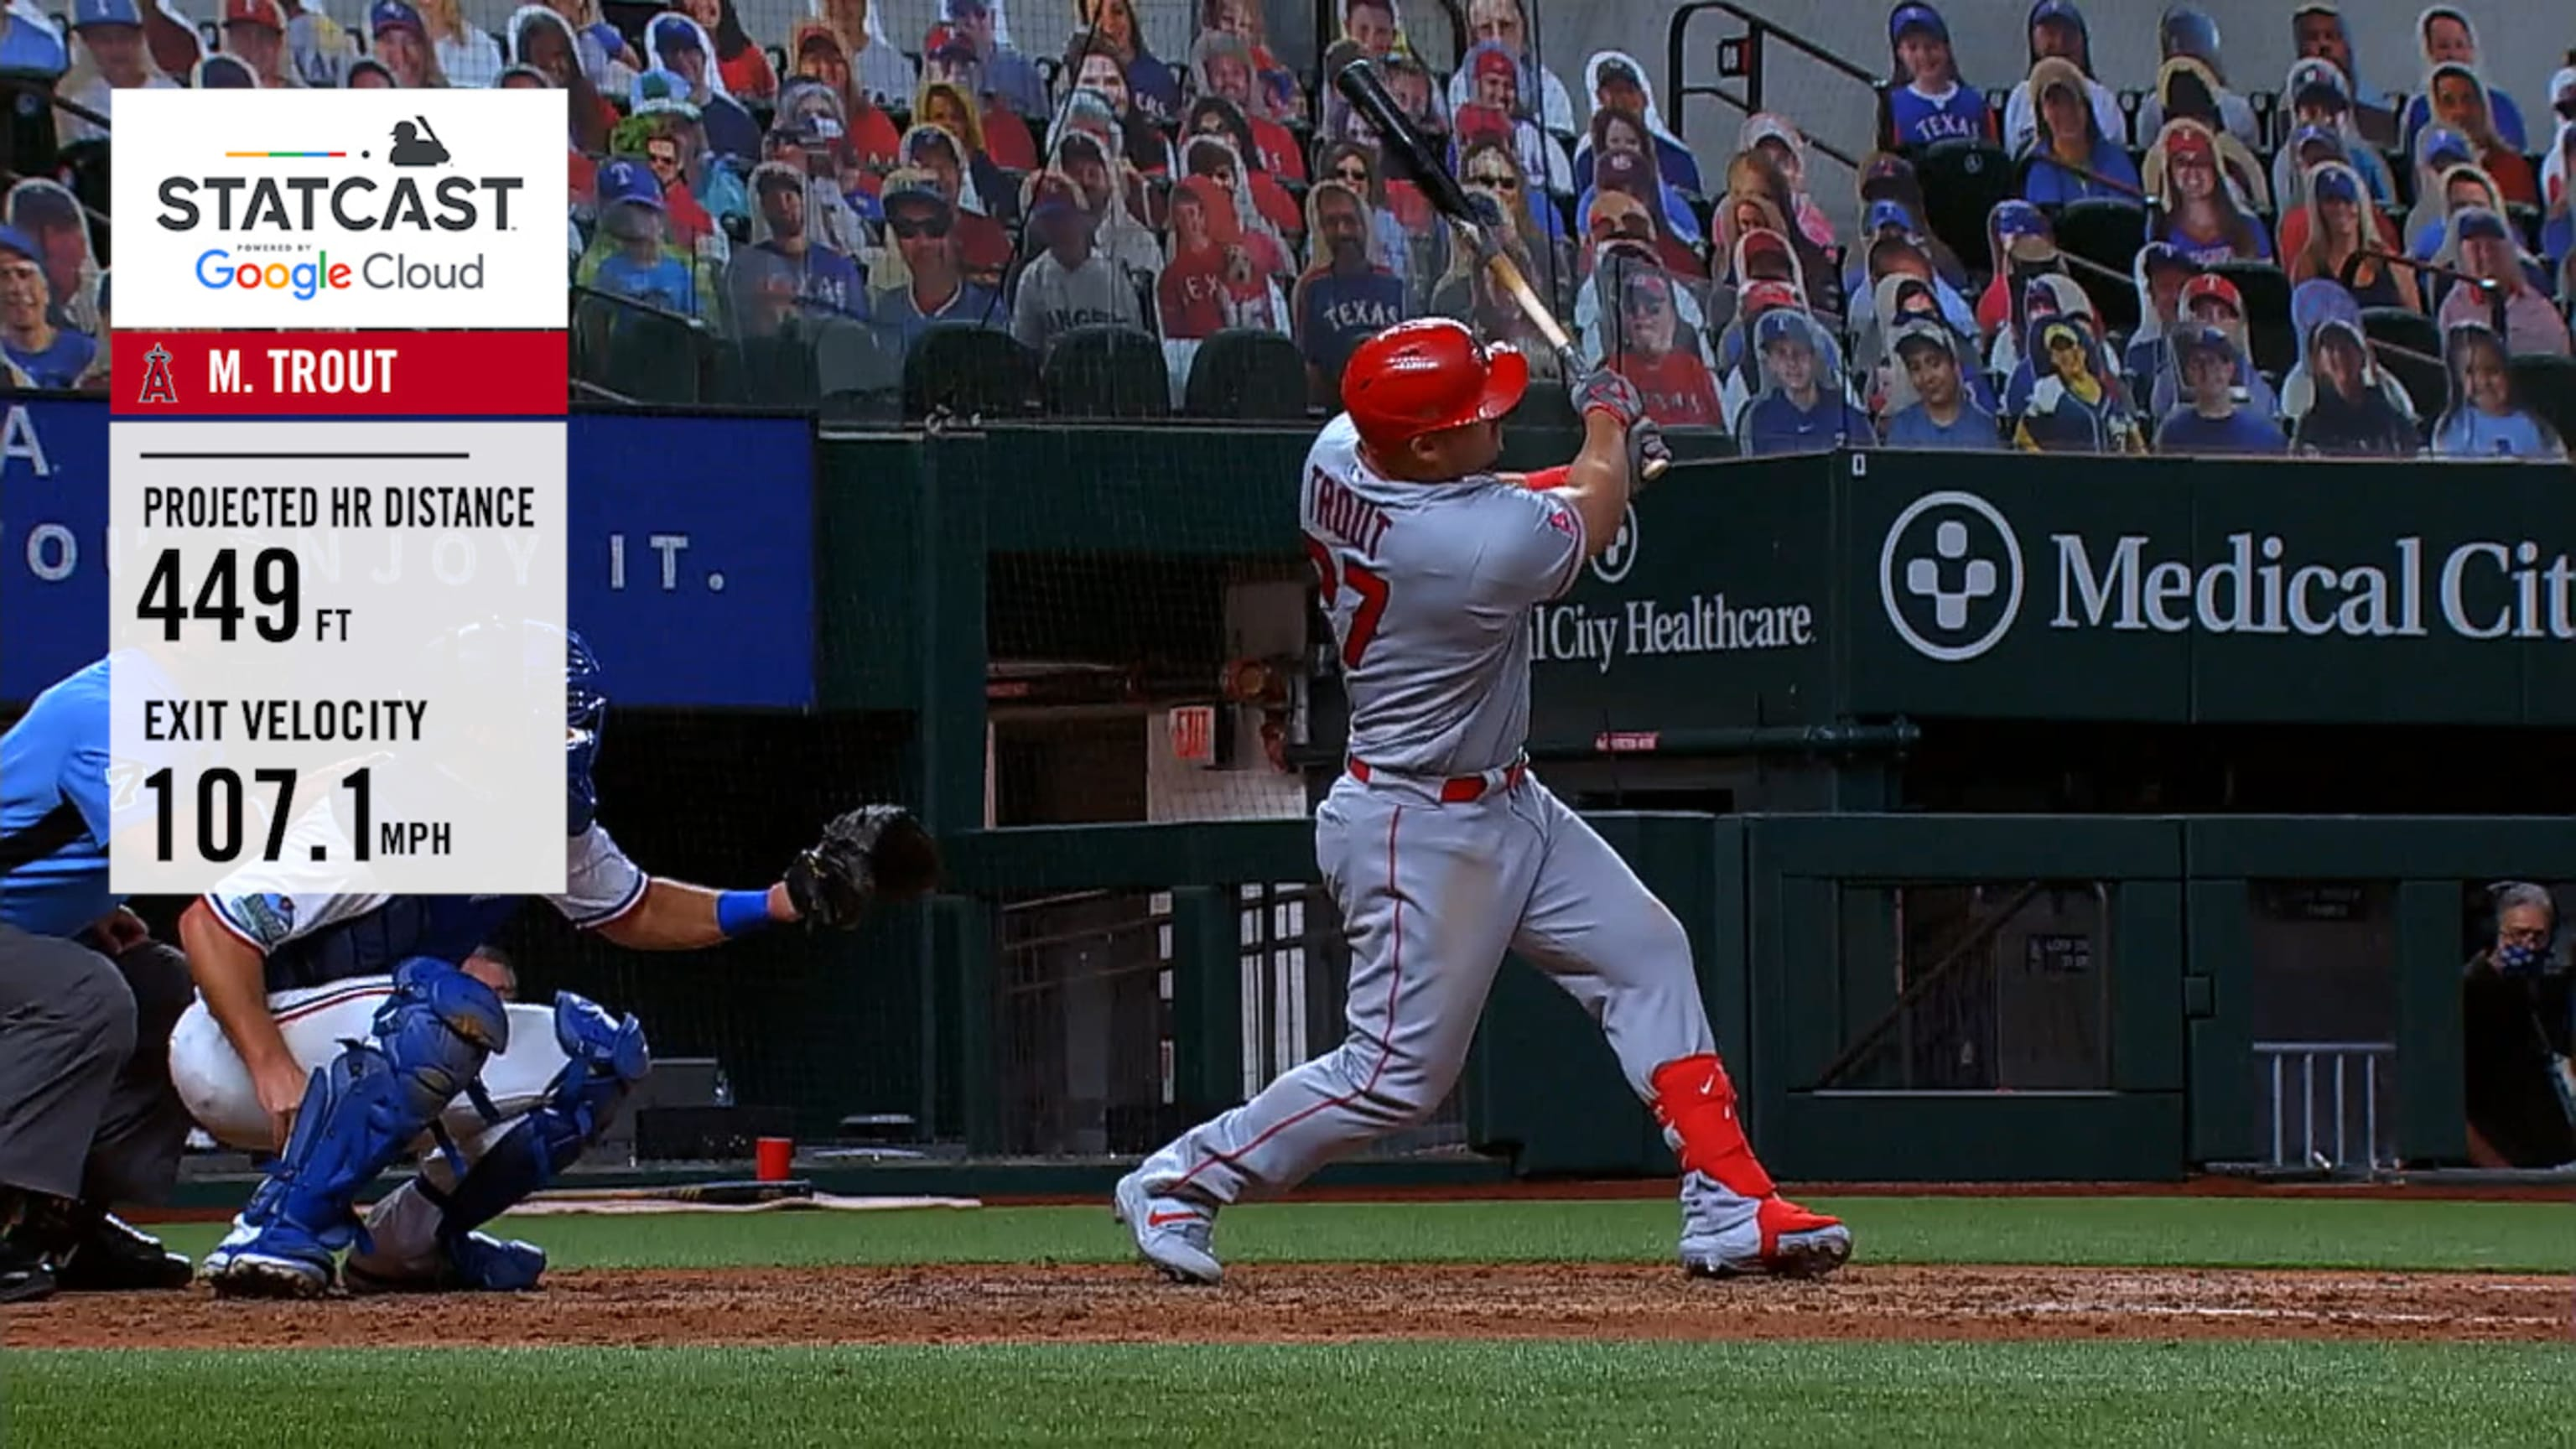 Mike Trout's 449-ft. home run